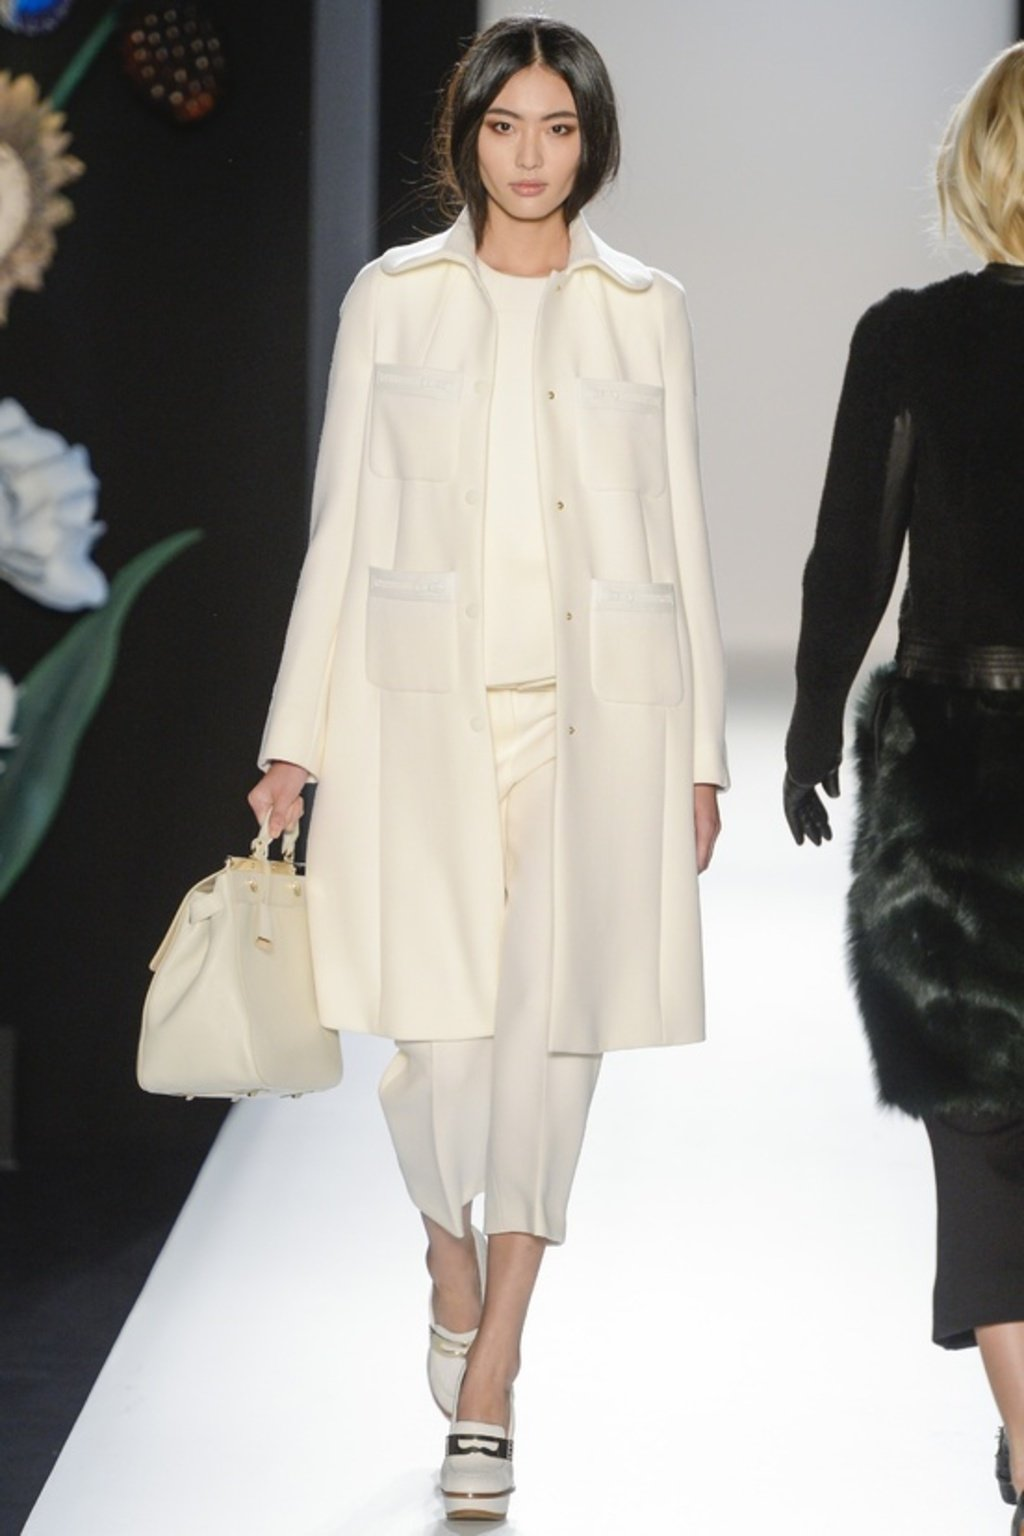 MONOCHROMATIC WHITE - MULBERRY  Photo Courtesy of Vogue France